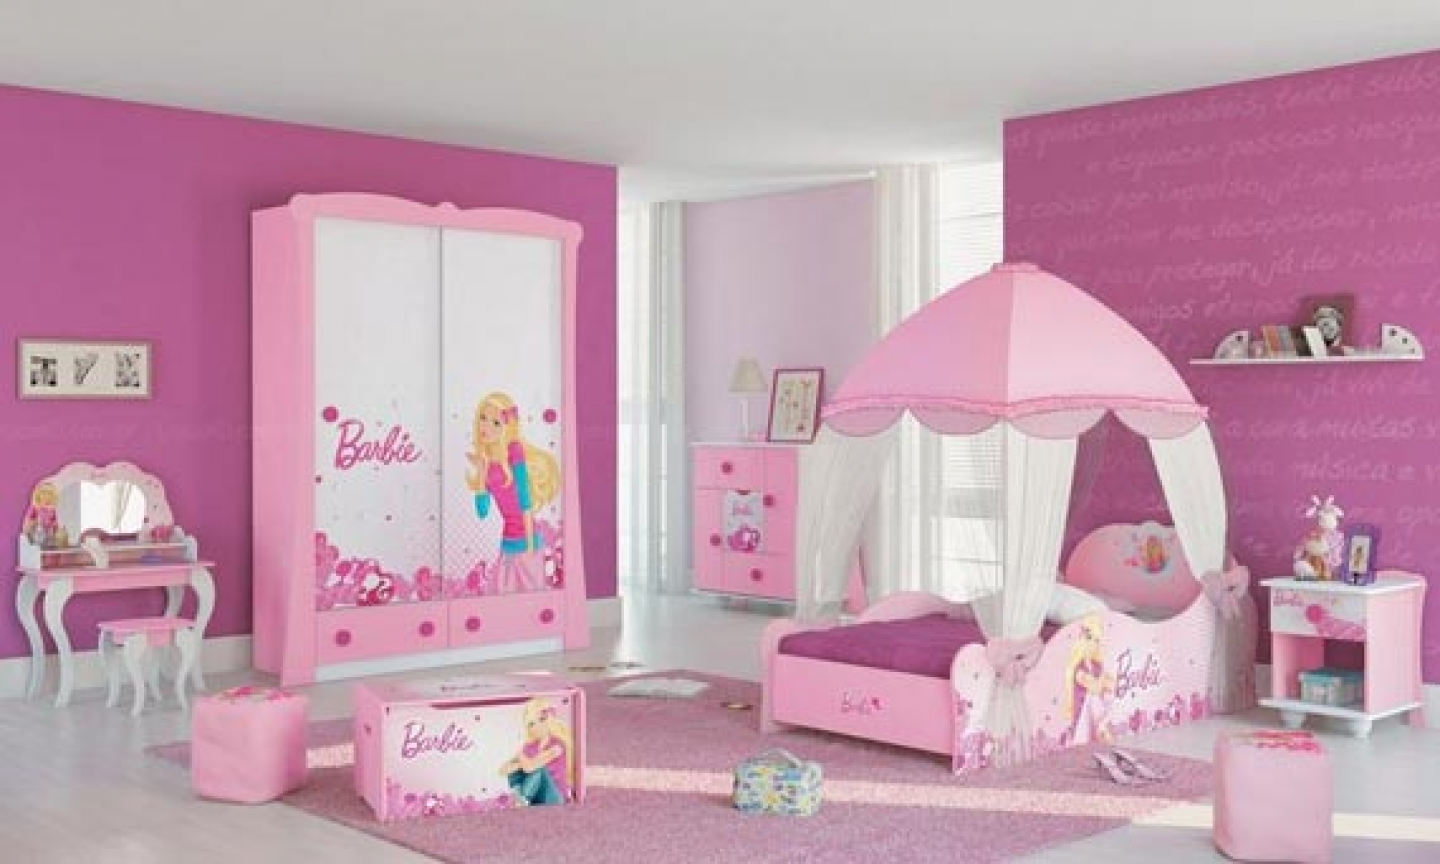 Kids bedroom ideas | Decoration Designs Guide